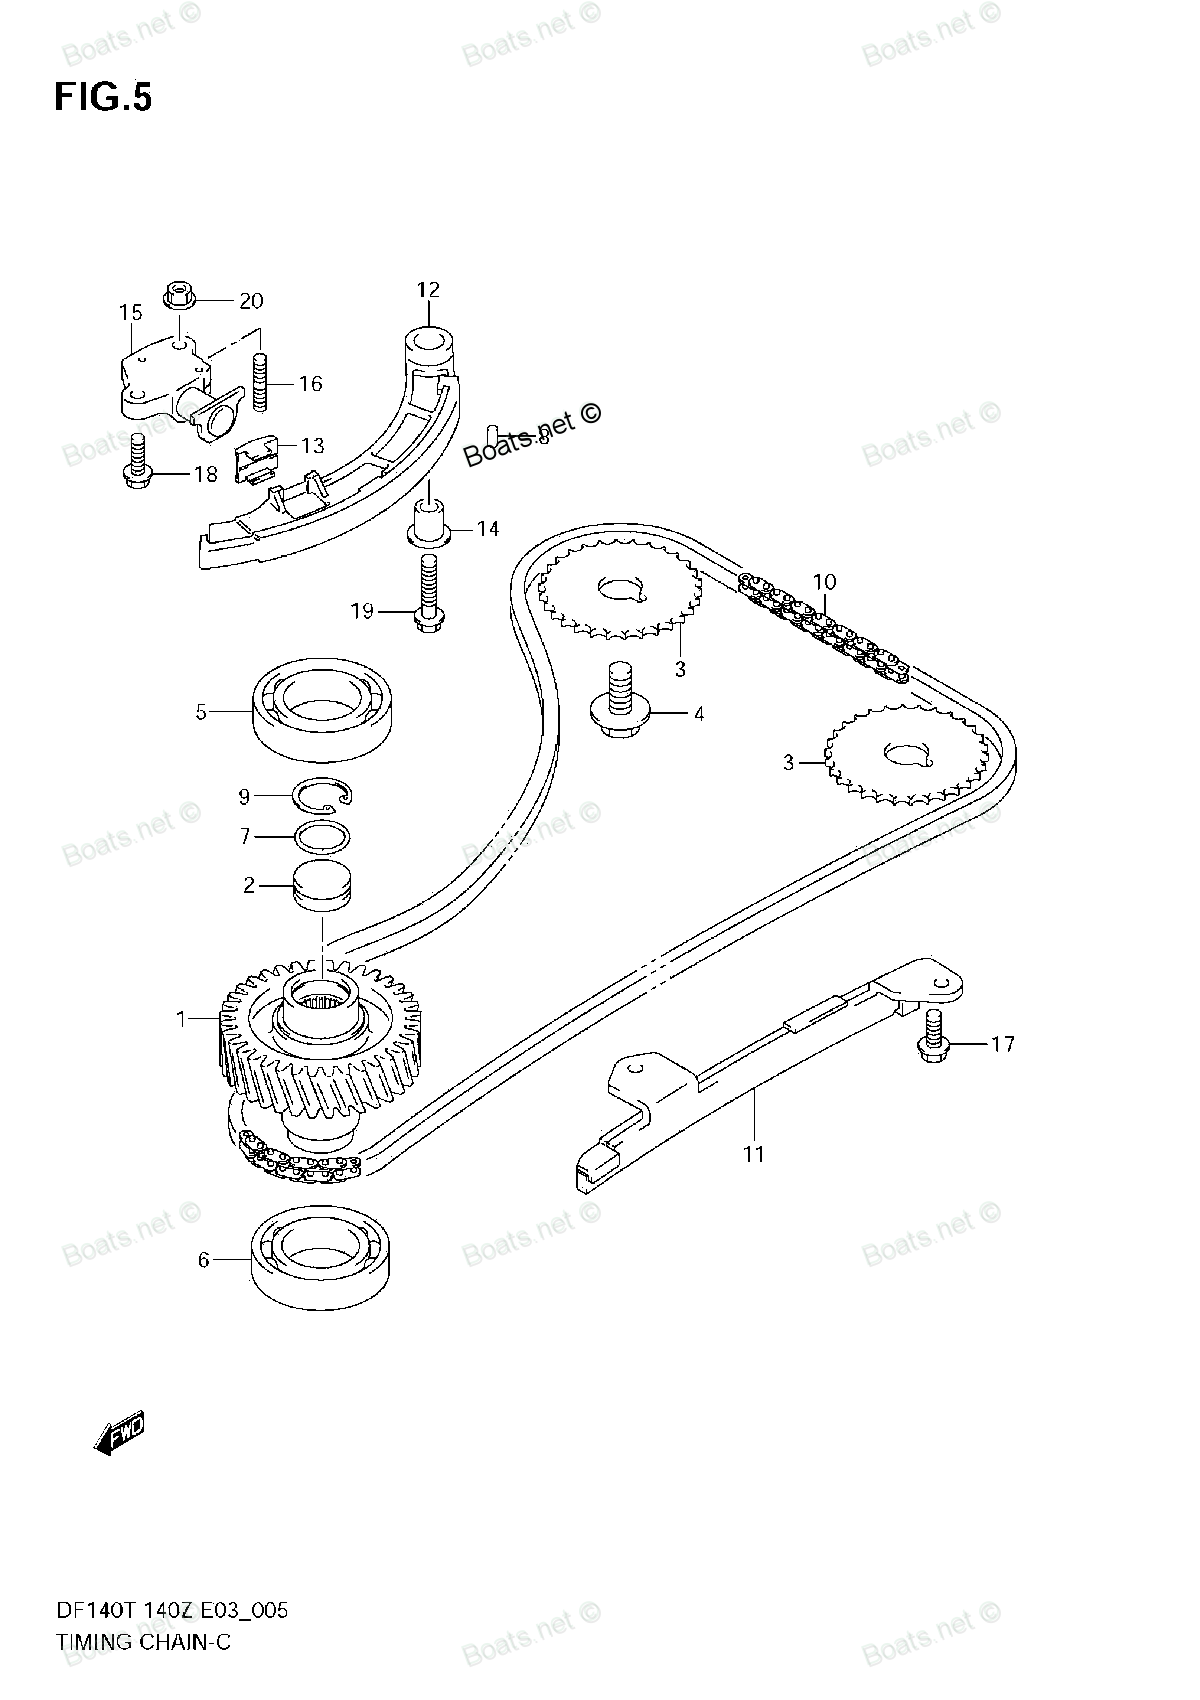 2003 Ford Taurus Engine Diagram of Timing Chain